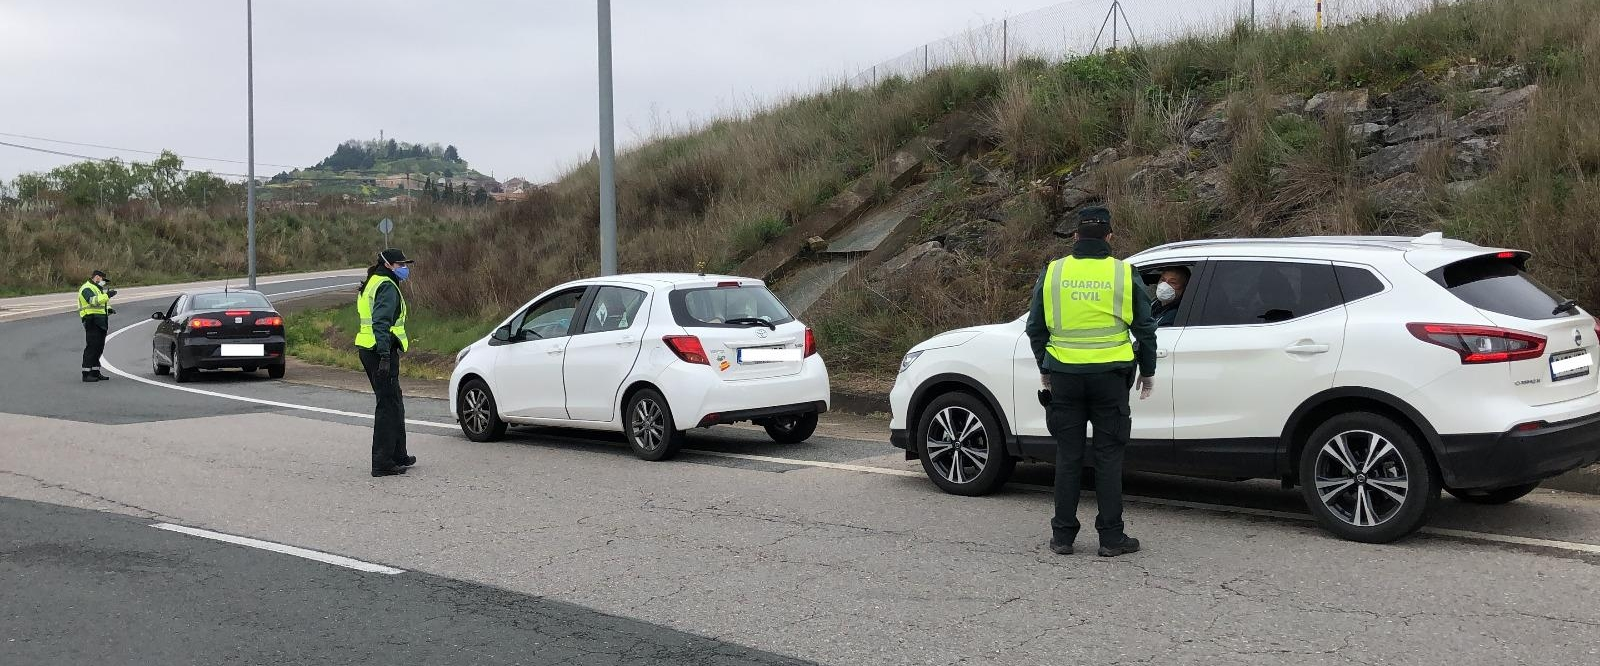 control, carretera, Guardia Civil